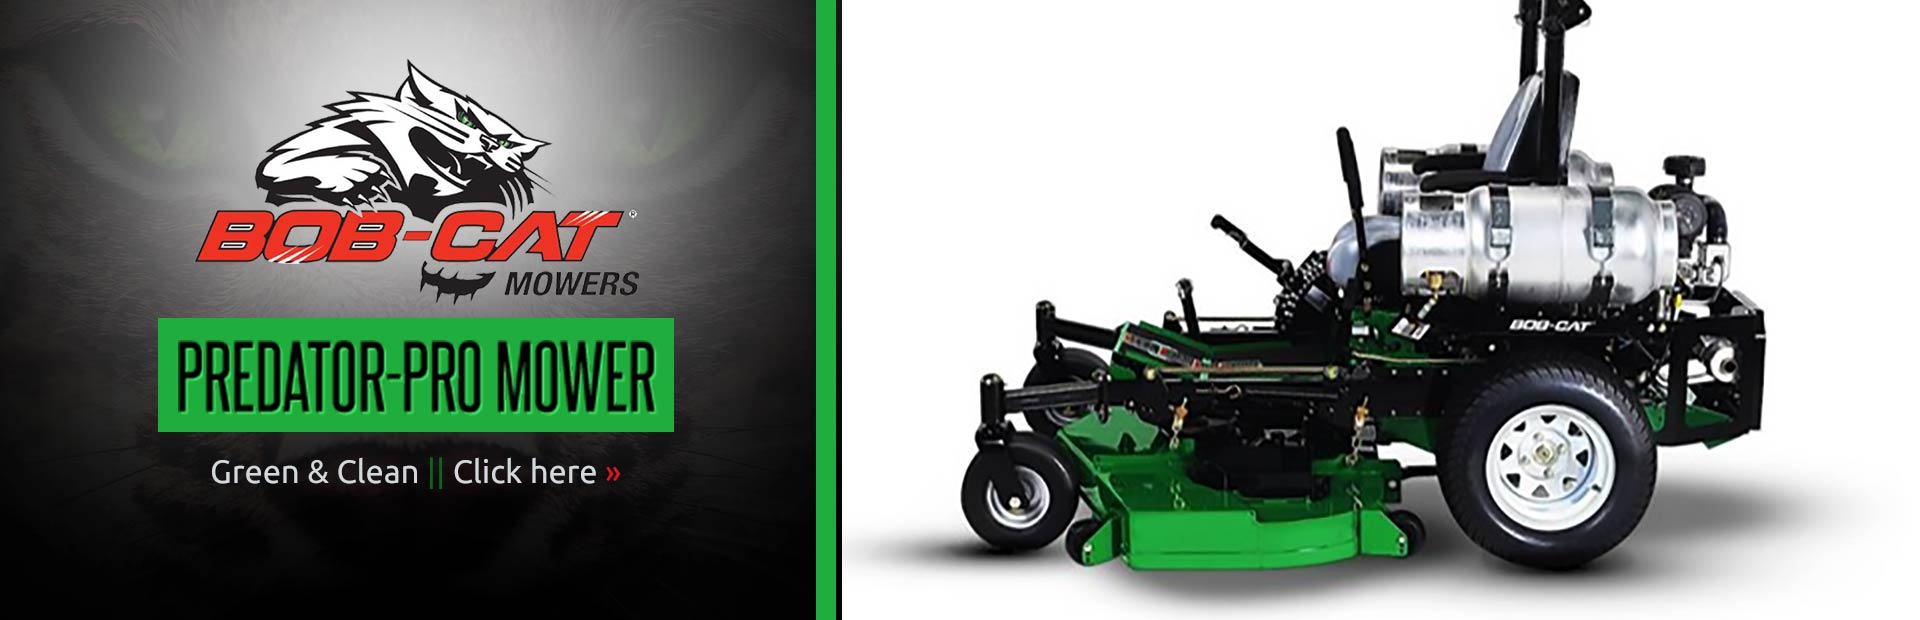 BOB-CAT® Predator-Pro Mower: Click here to view our selection.